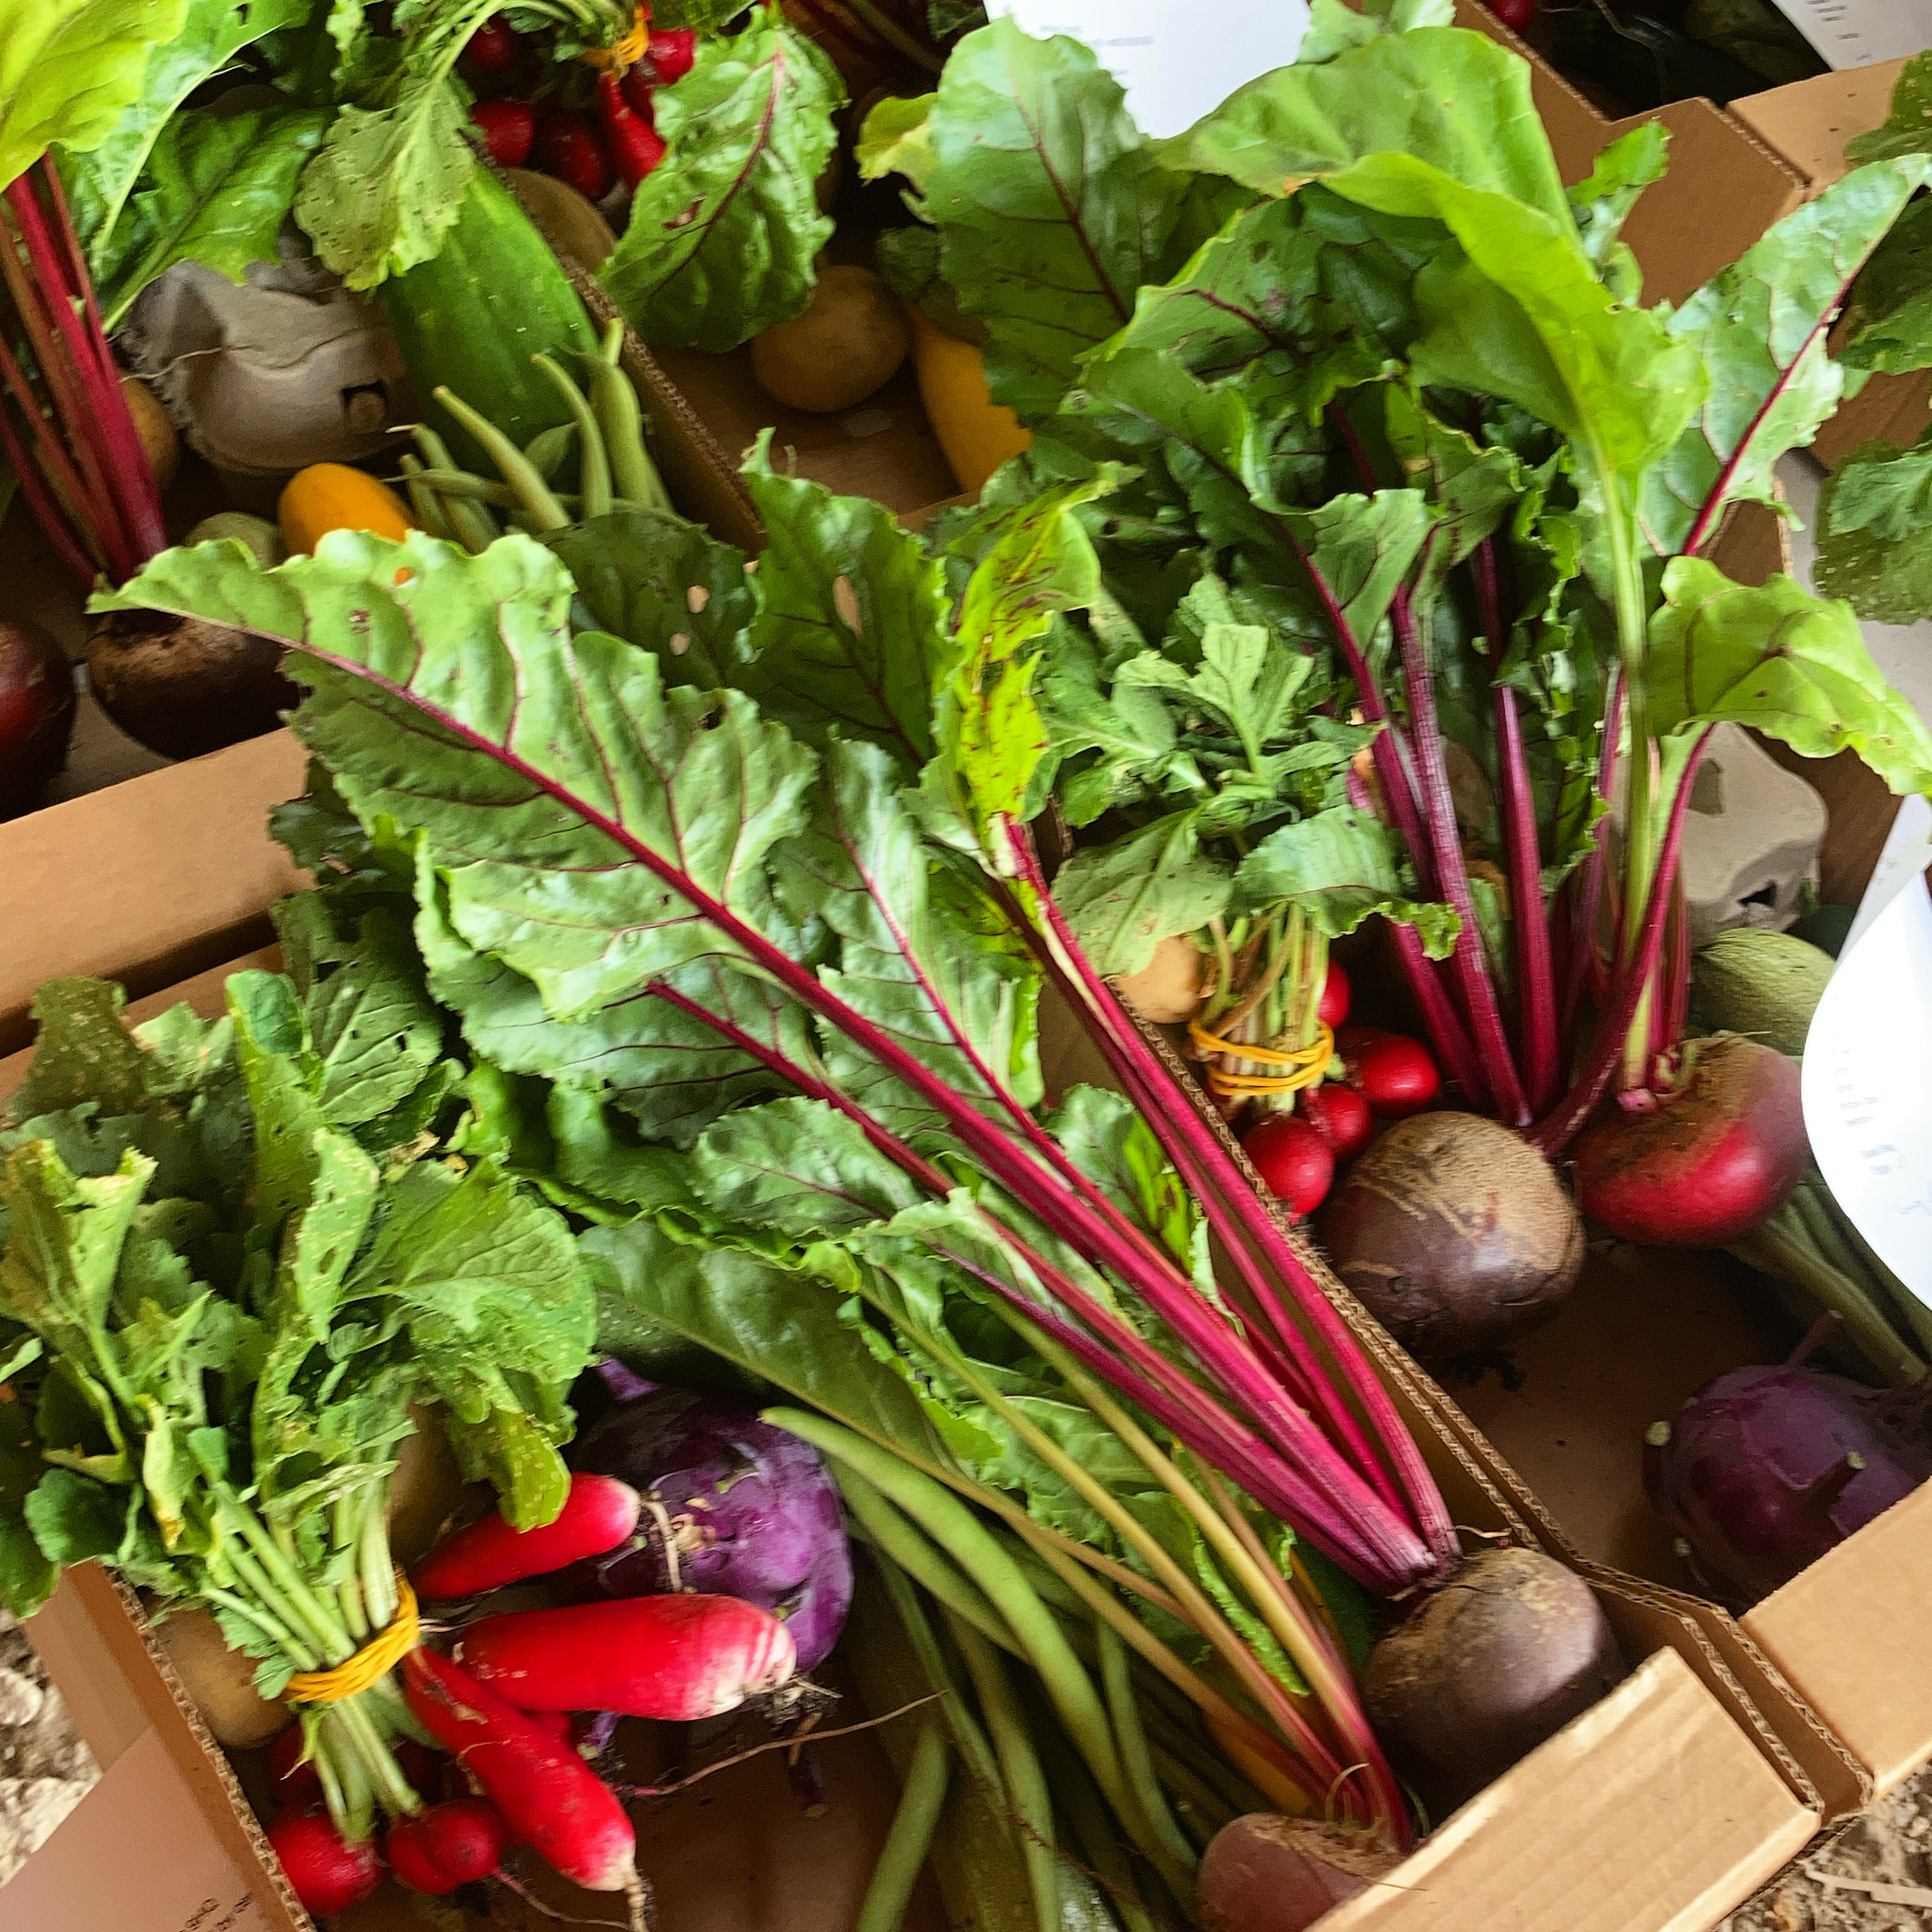 Fanfield Farm Veg Box 2